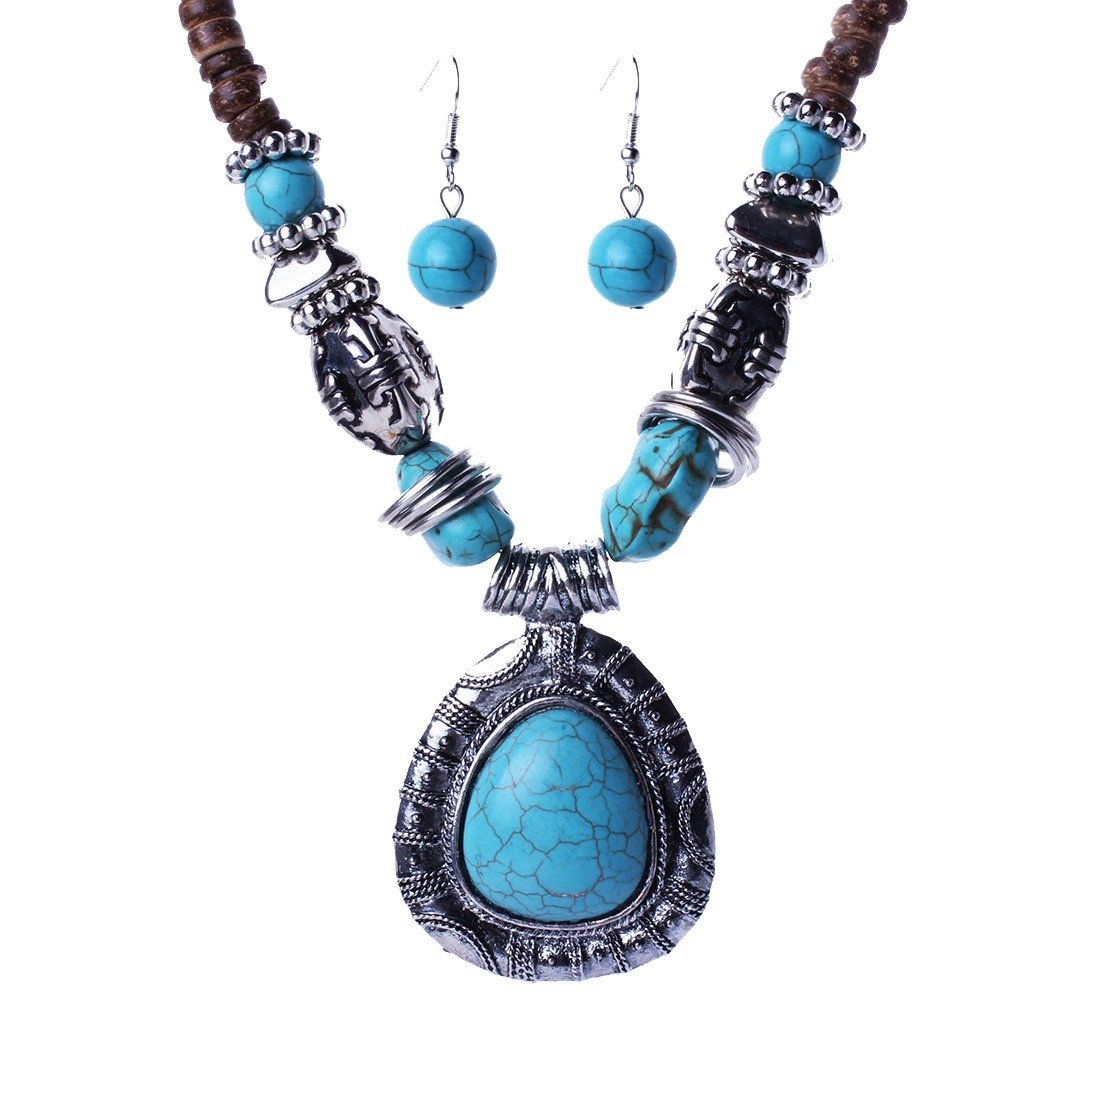 Qiyun Tibet Silver Blue Turquoise Stone Pendant Wooden Beaded Necklace Earring Argent Pierre Bleu Turquoise Bois Collier W005N1881